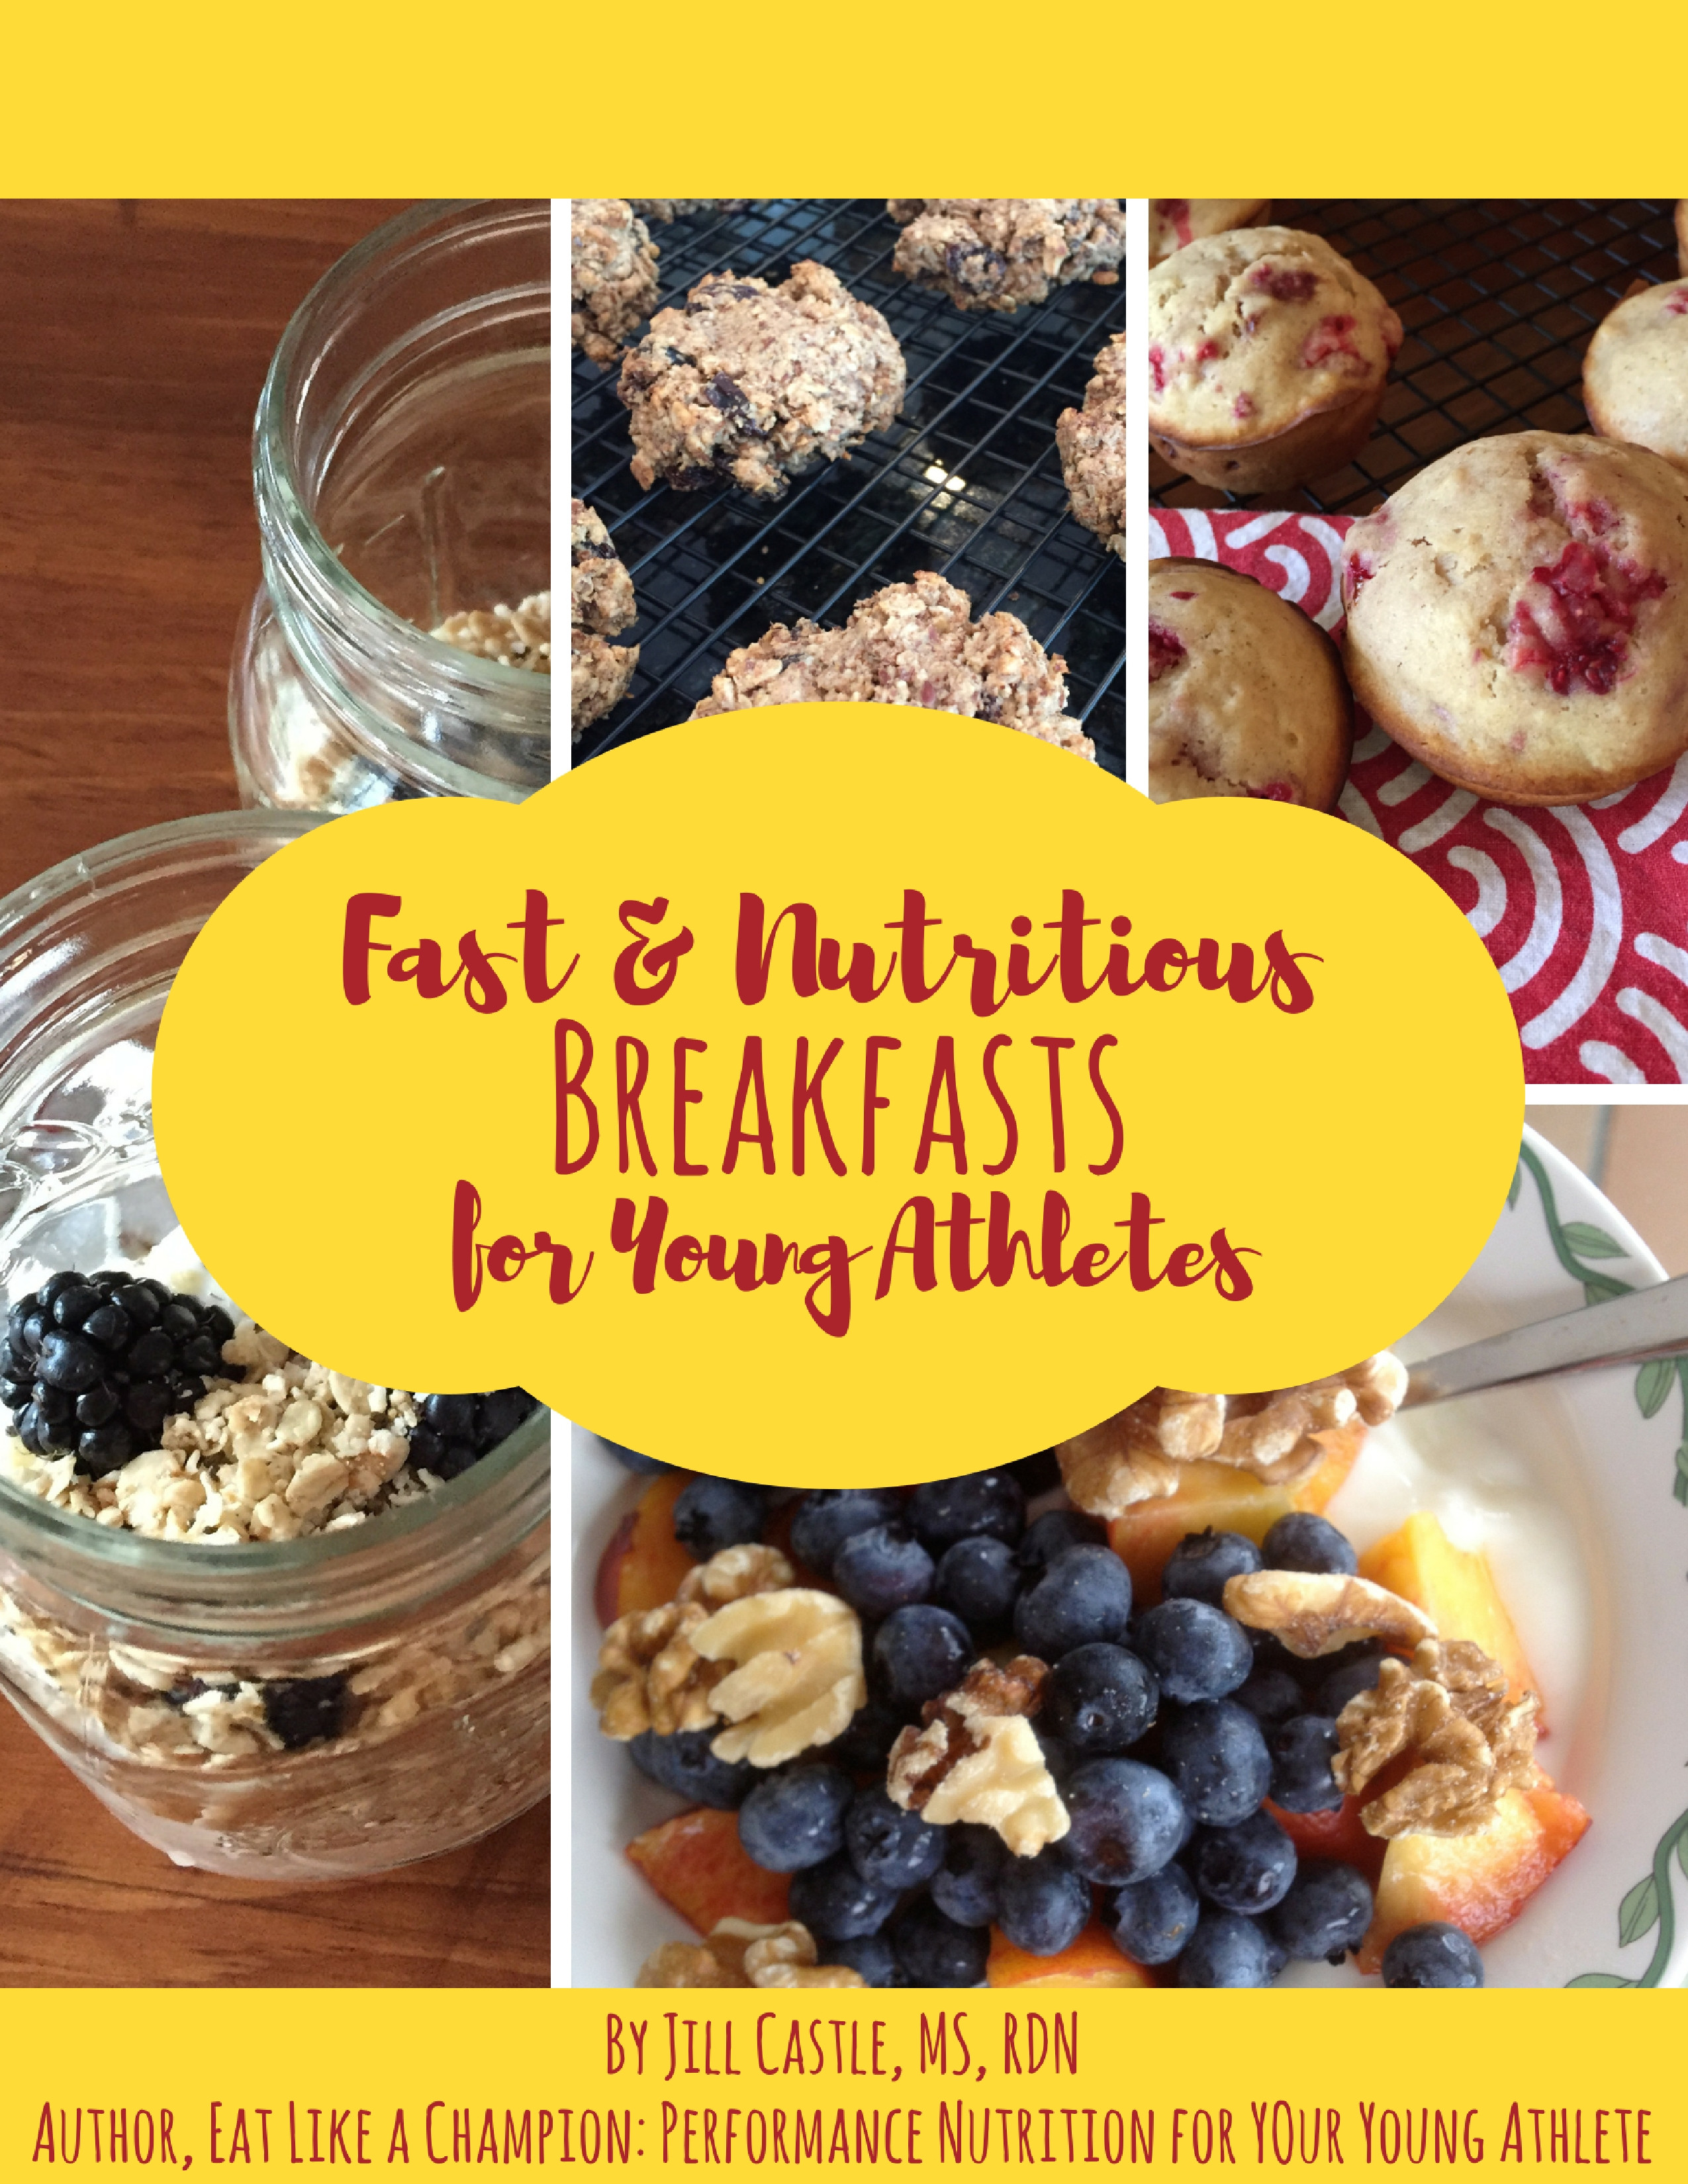 Healthy Breakfast For Teenage Athletes  Fast & Nutritious Breakfasts for Young Athletes